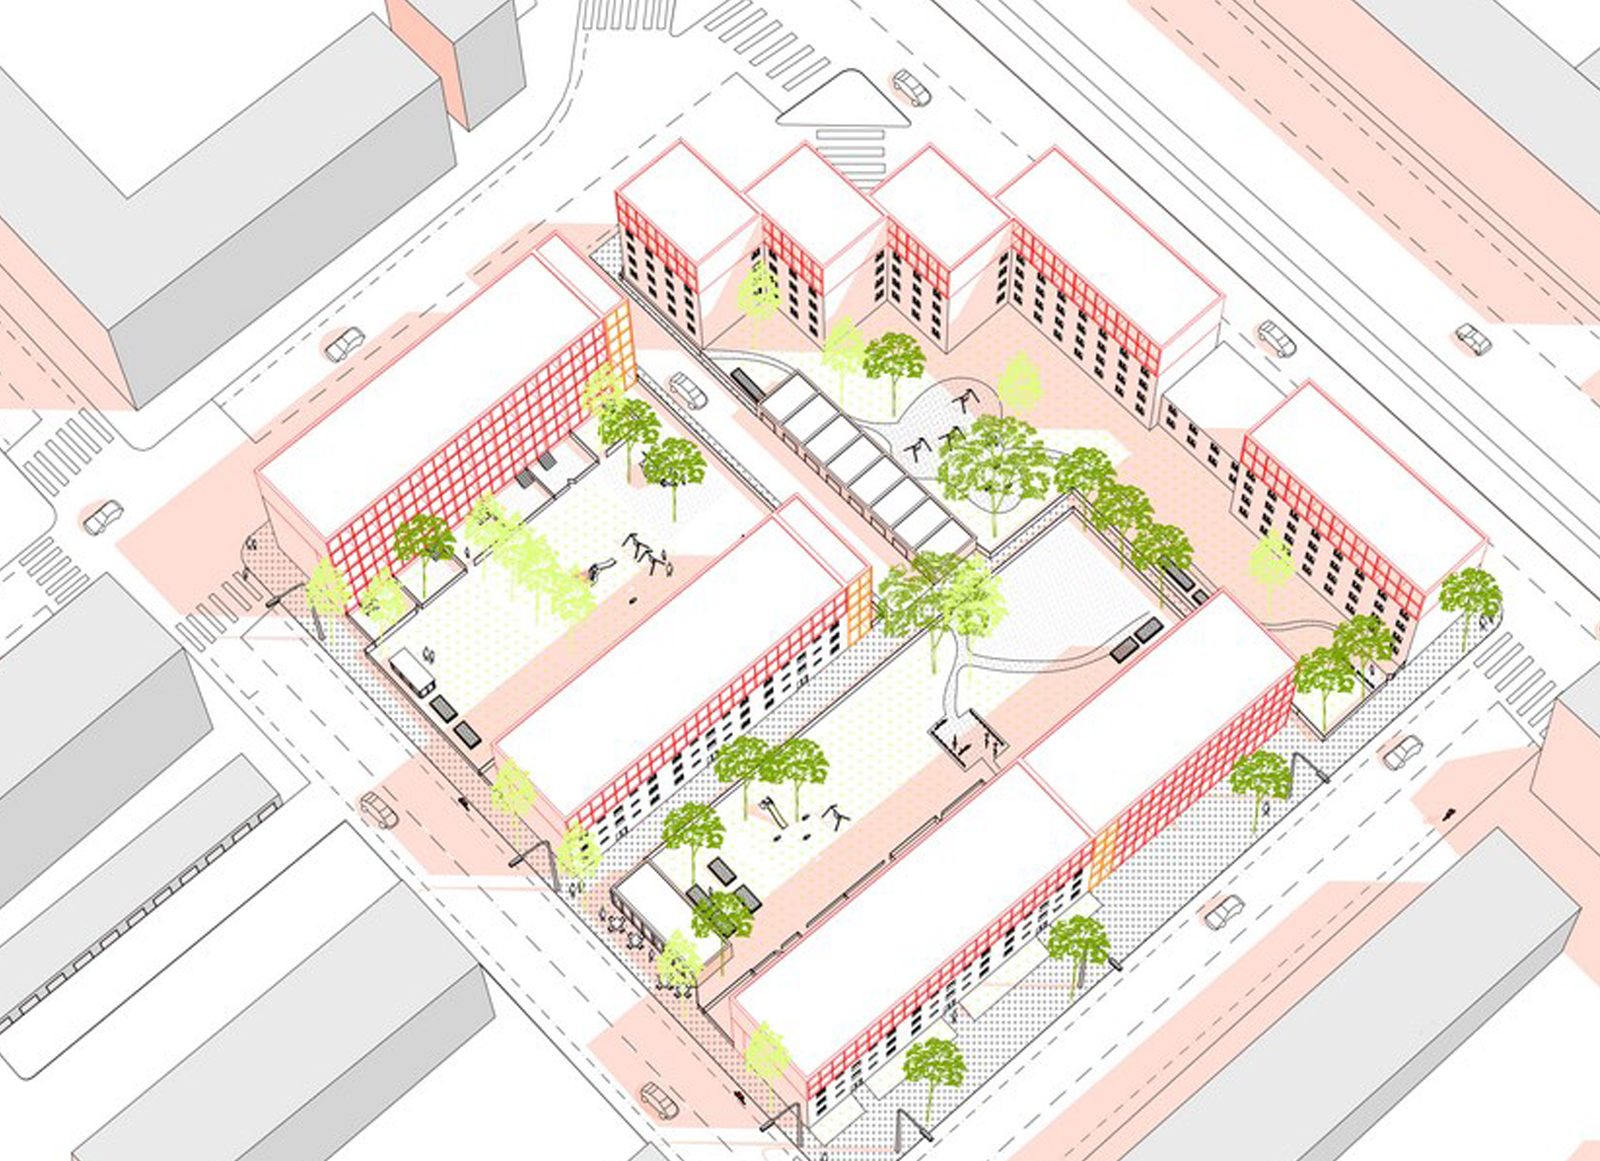 Densify Housing Rows – Optimize Urban Space by Franziska Niepenberg | International Residential Architecture Awards 2019